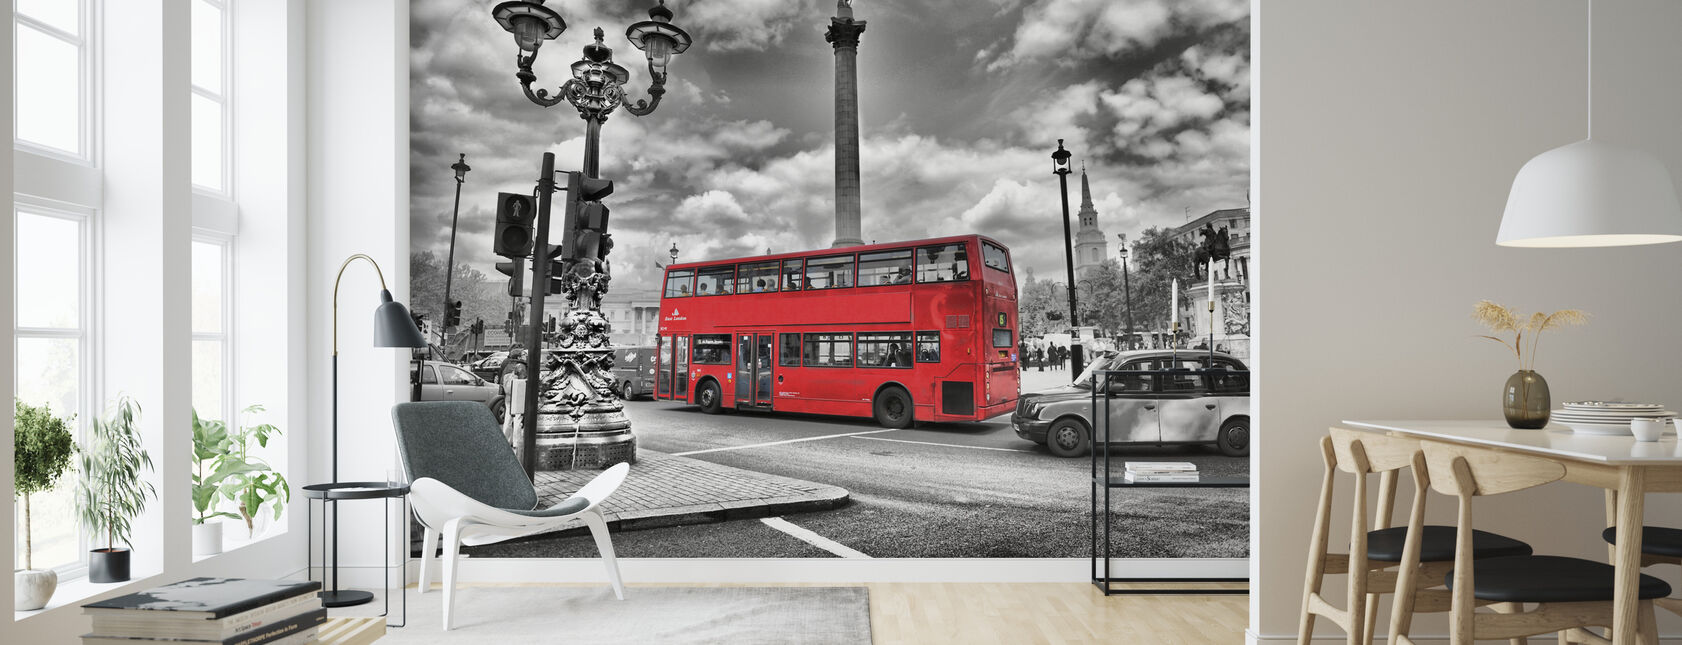 London Bus - Colorsplash - Wallpaper - Living Room